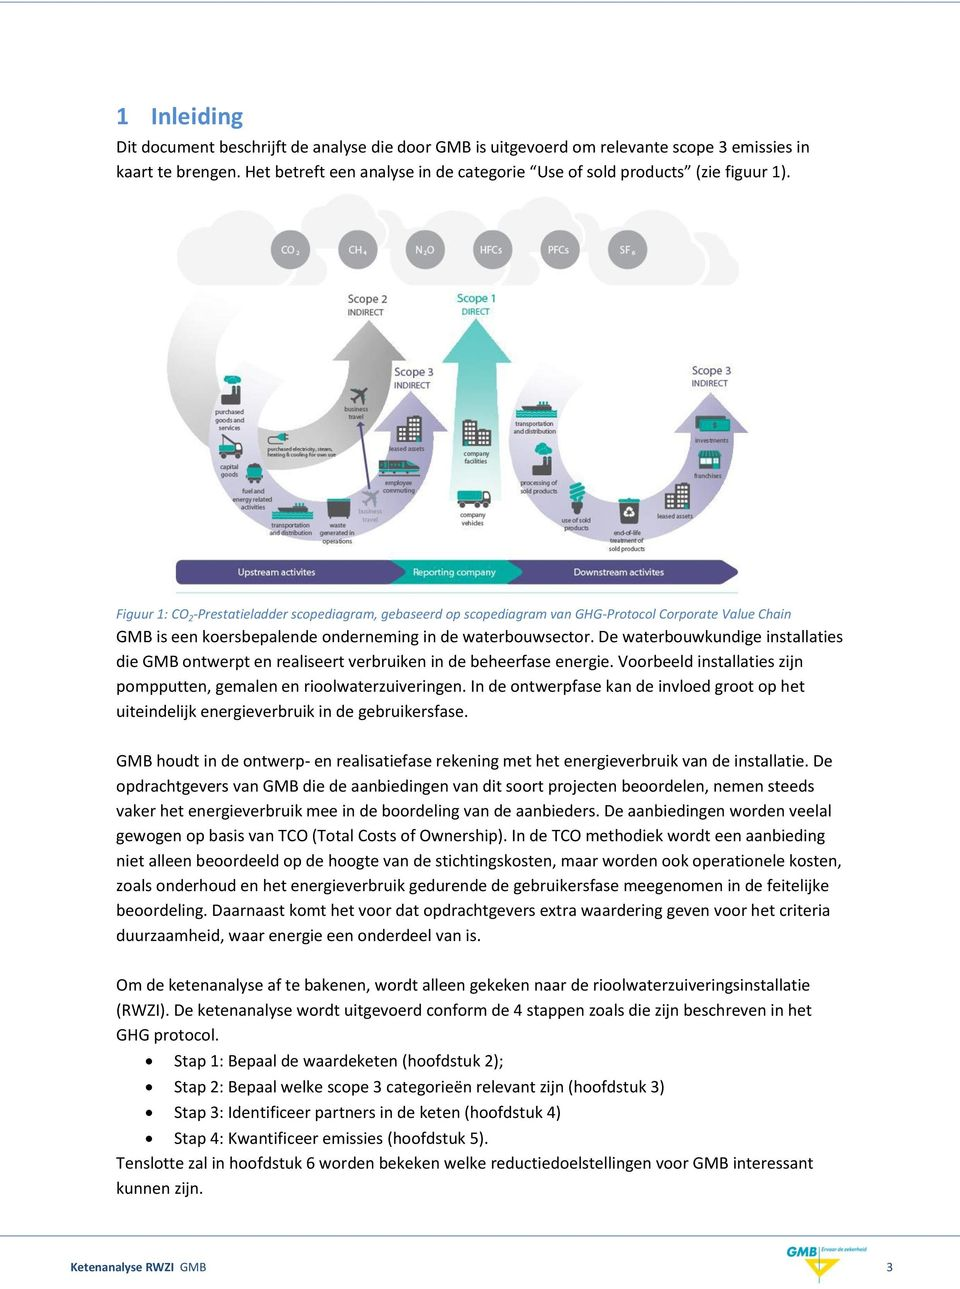 Figuur 1: CO 2 -Prestatieladder scopediagram, gebaseerd op scopediagram van GHG-Protocol Corporate Value Chain GMB is een koersbepalende onderneming in de waterbouwsector.